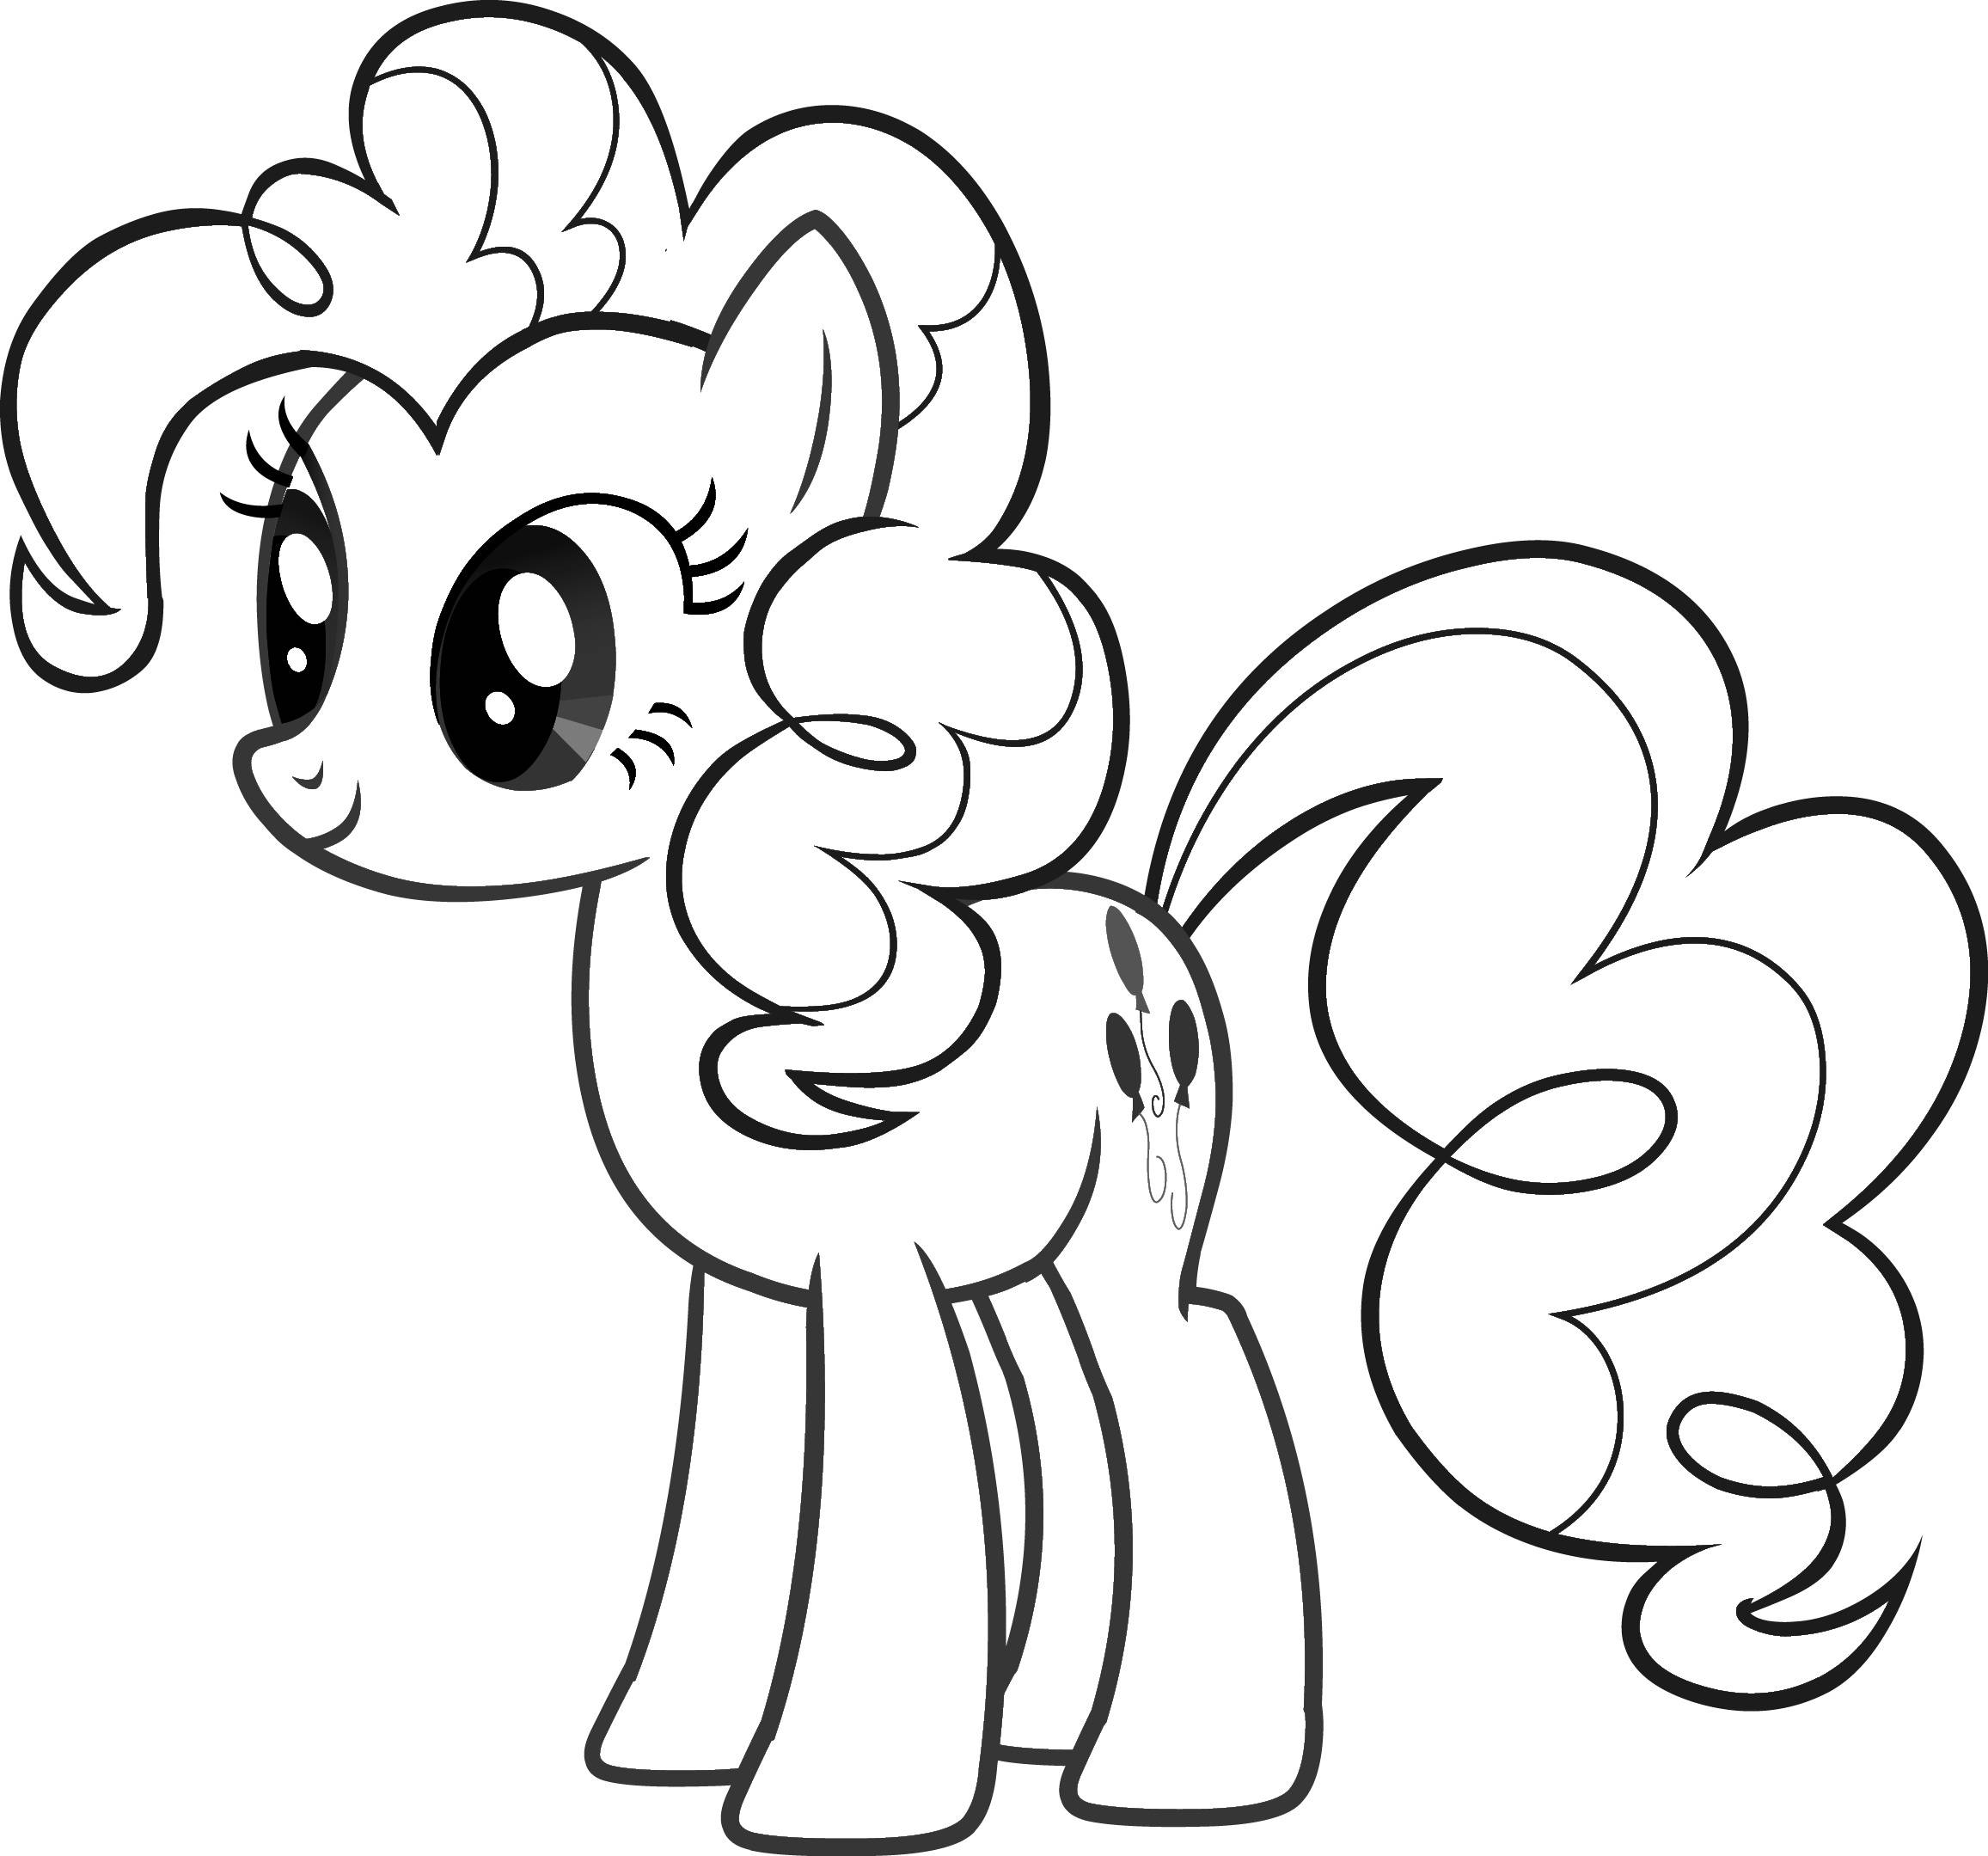 Young my little pony coloring pages - My Little Pony Coloring Pages